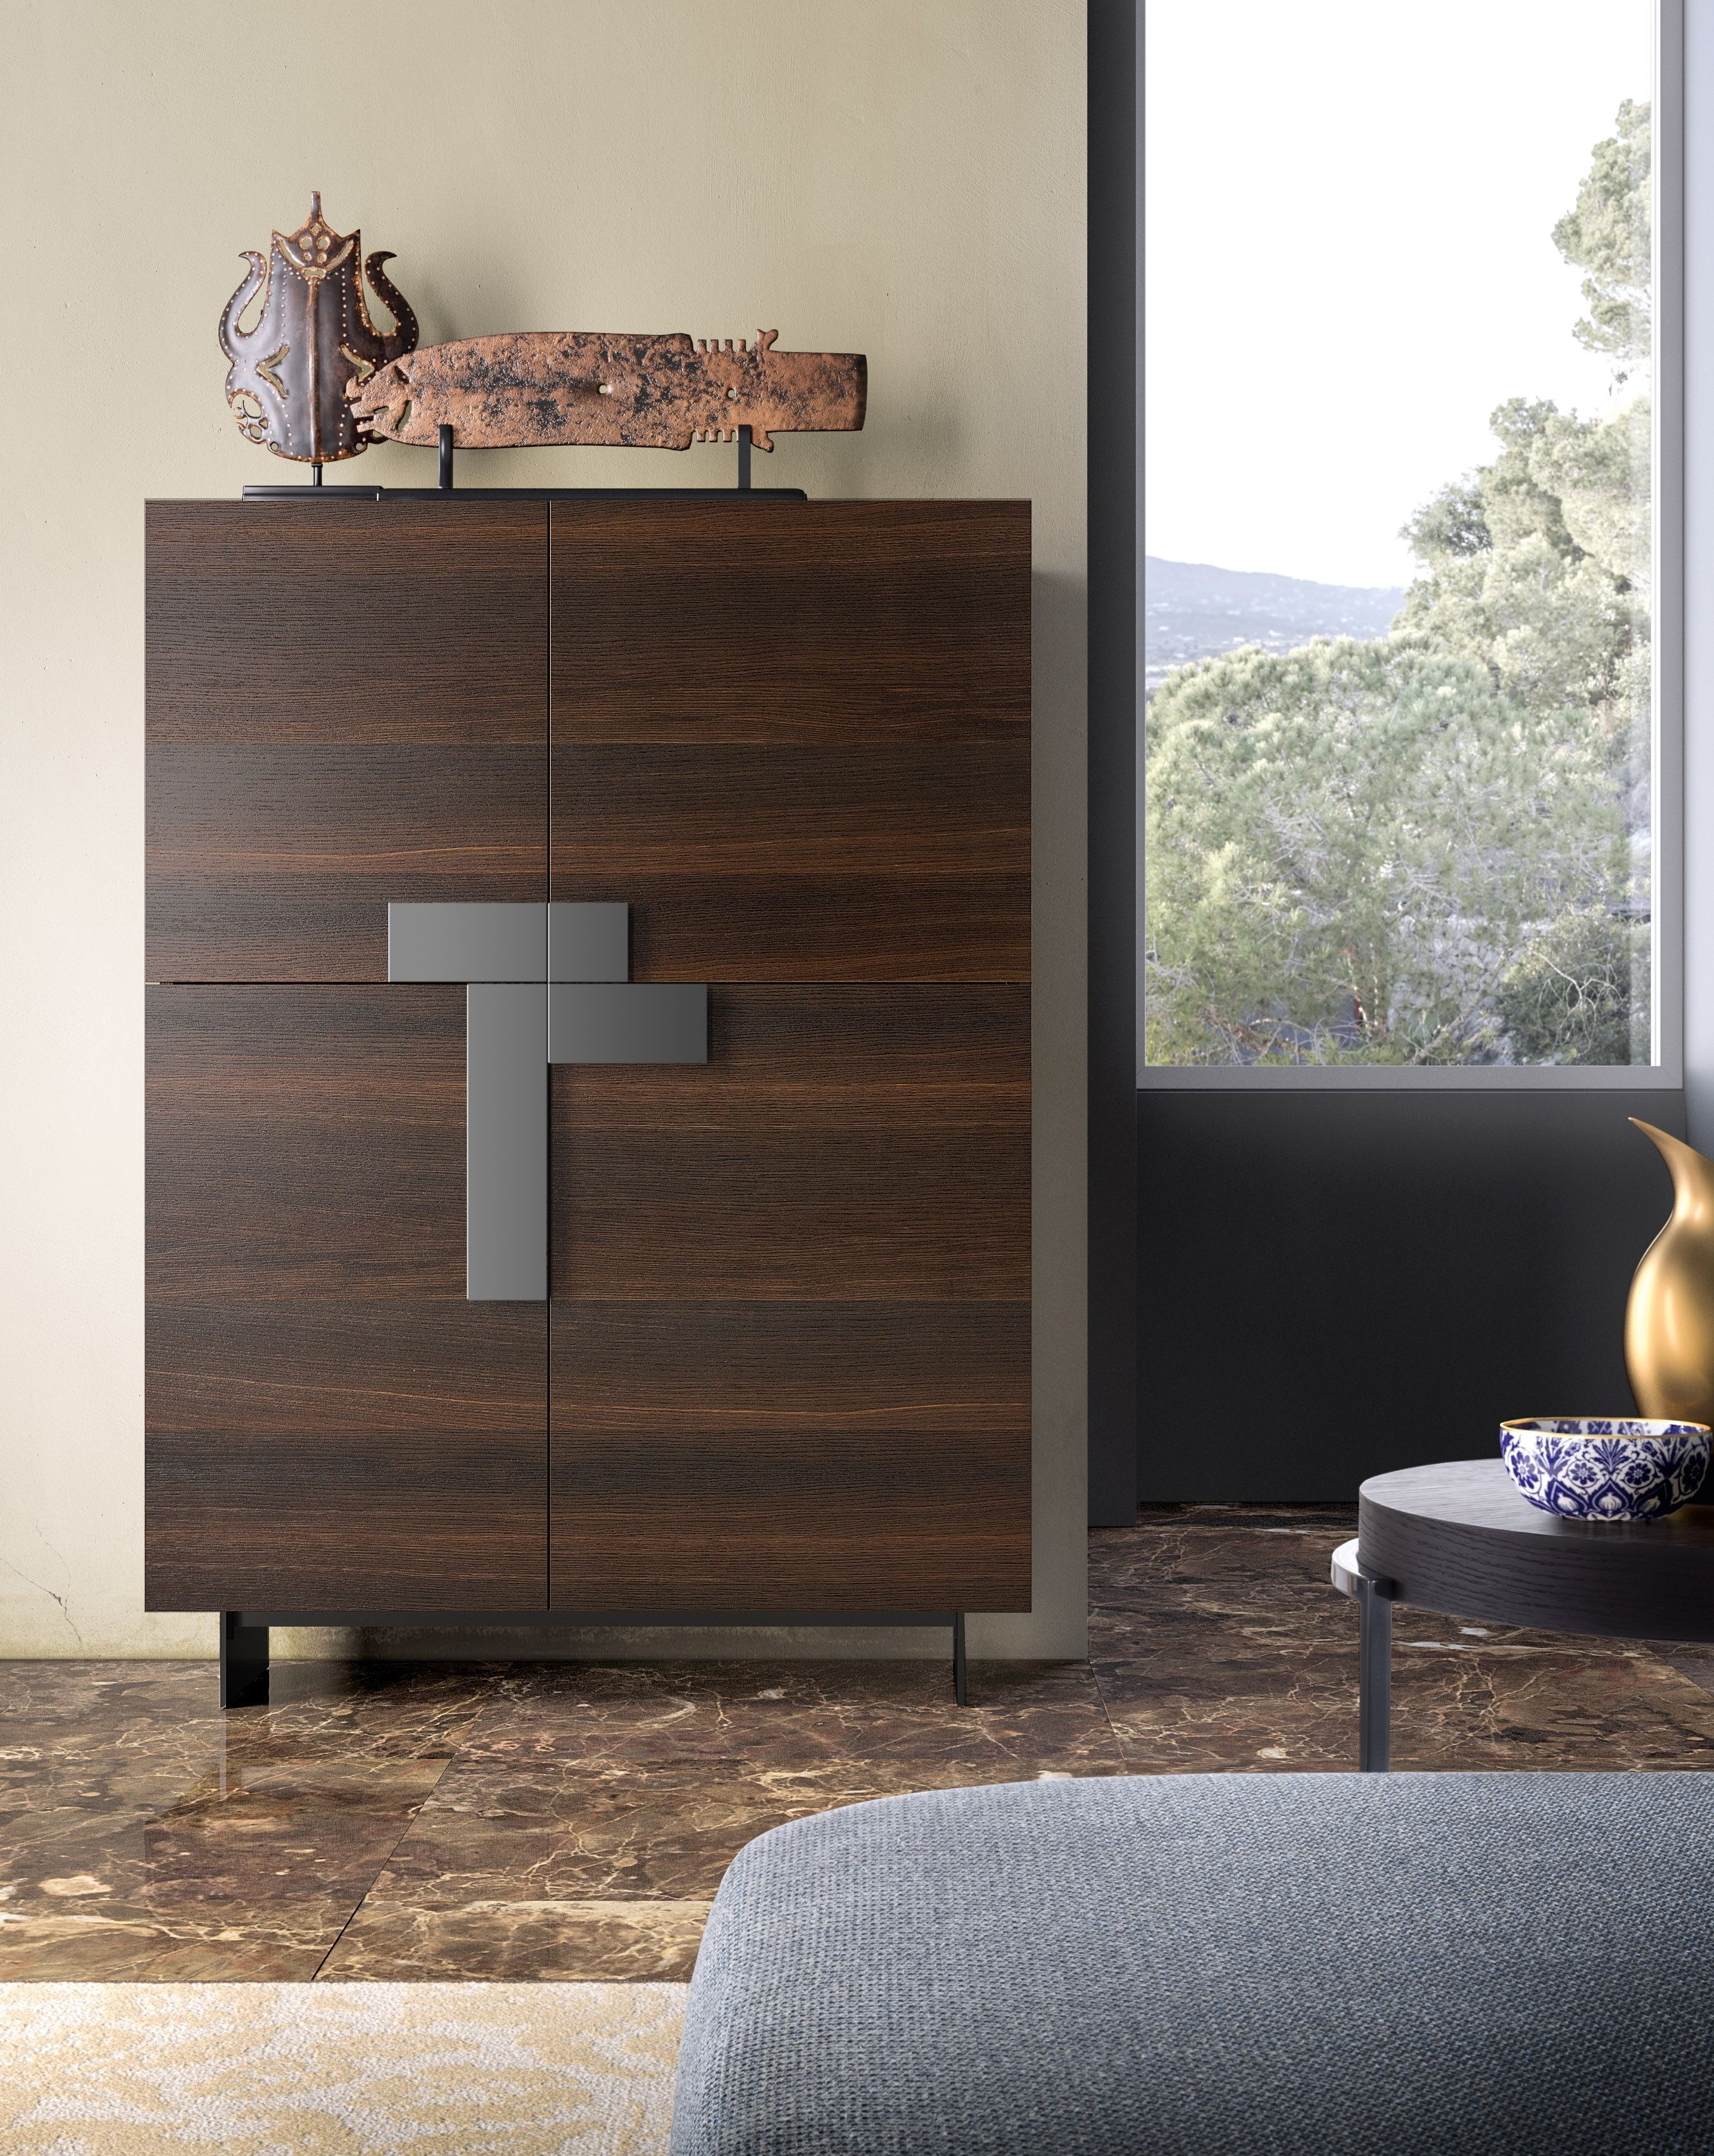 Ginevra Sideboard With Burnt Oak Structure And Fronts, Titanium within Black Burnt Oak Sideboards (Image 10 of 30)